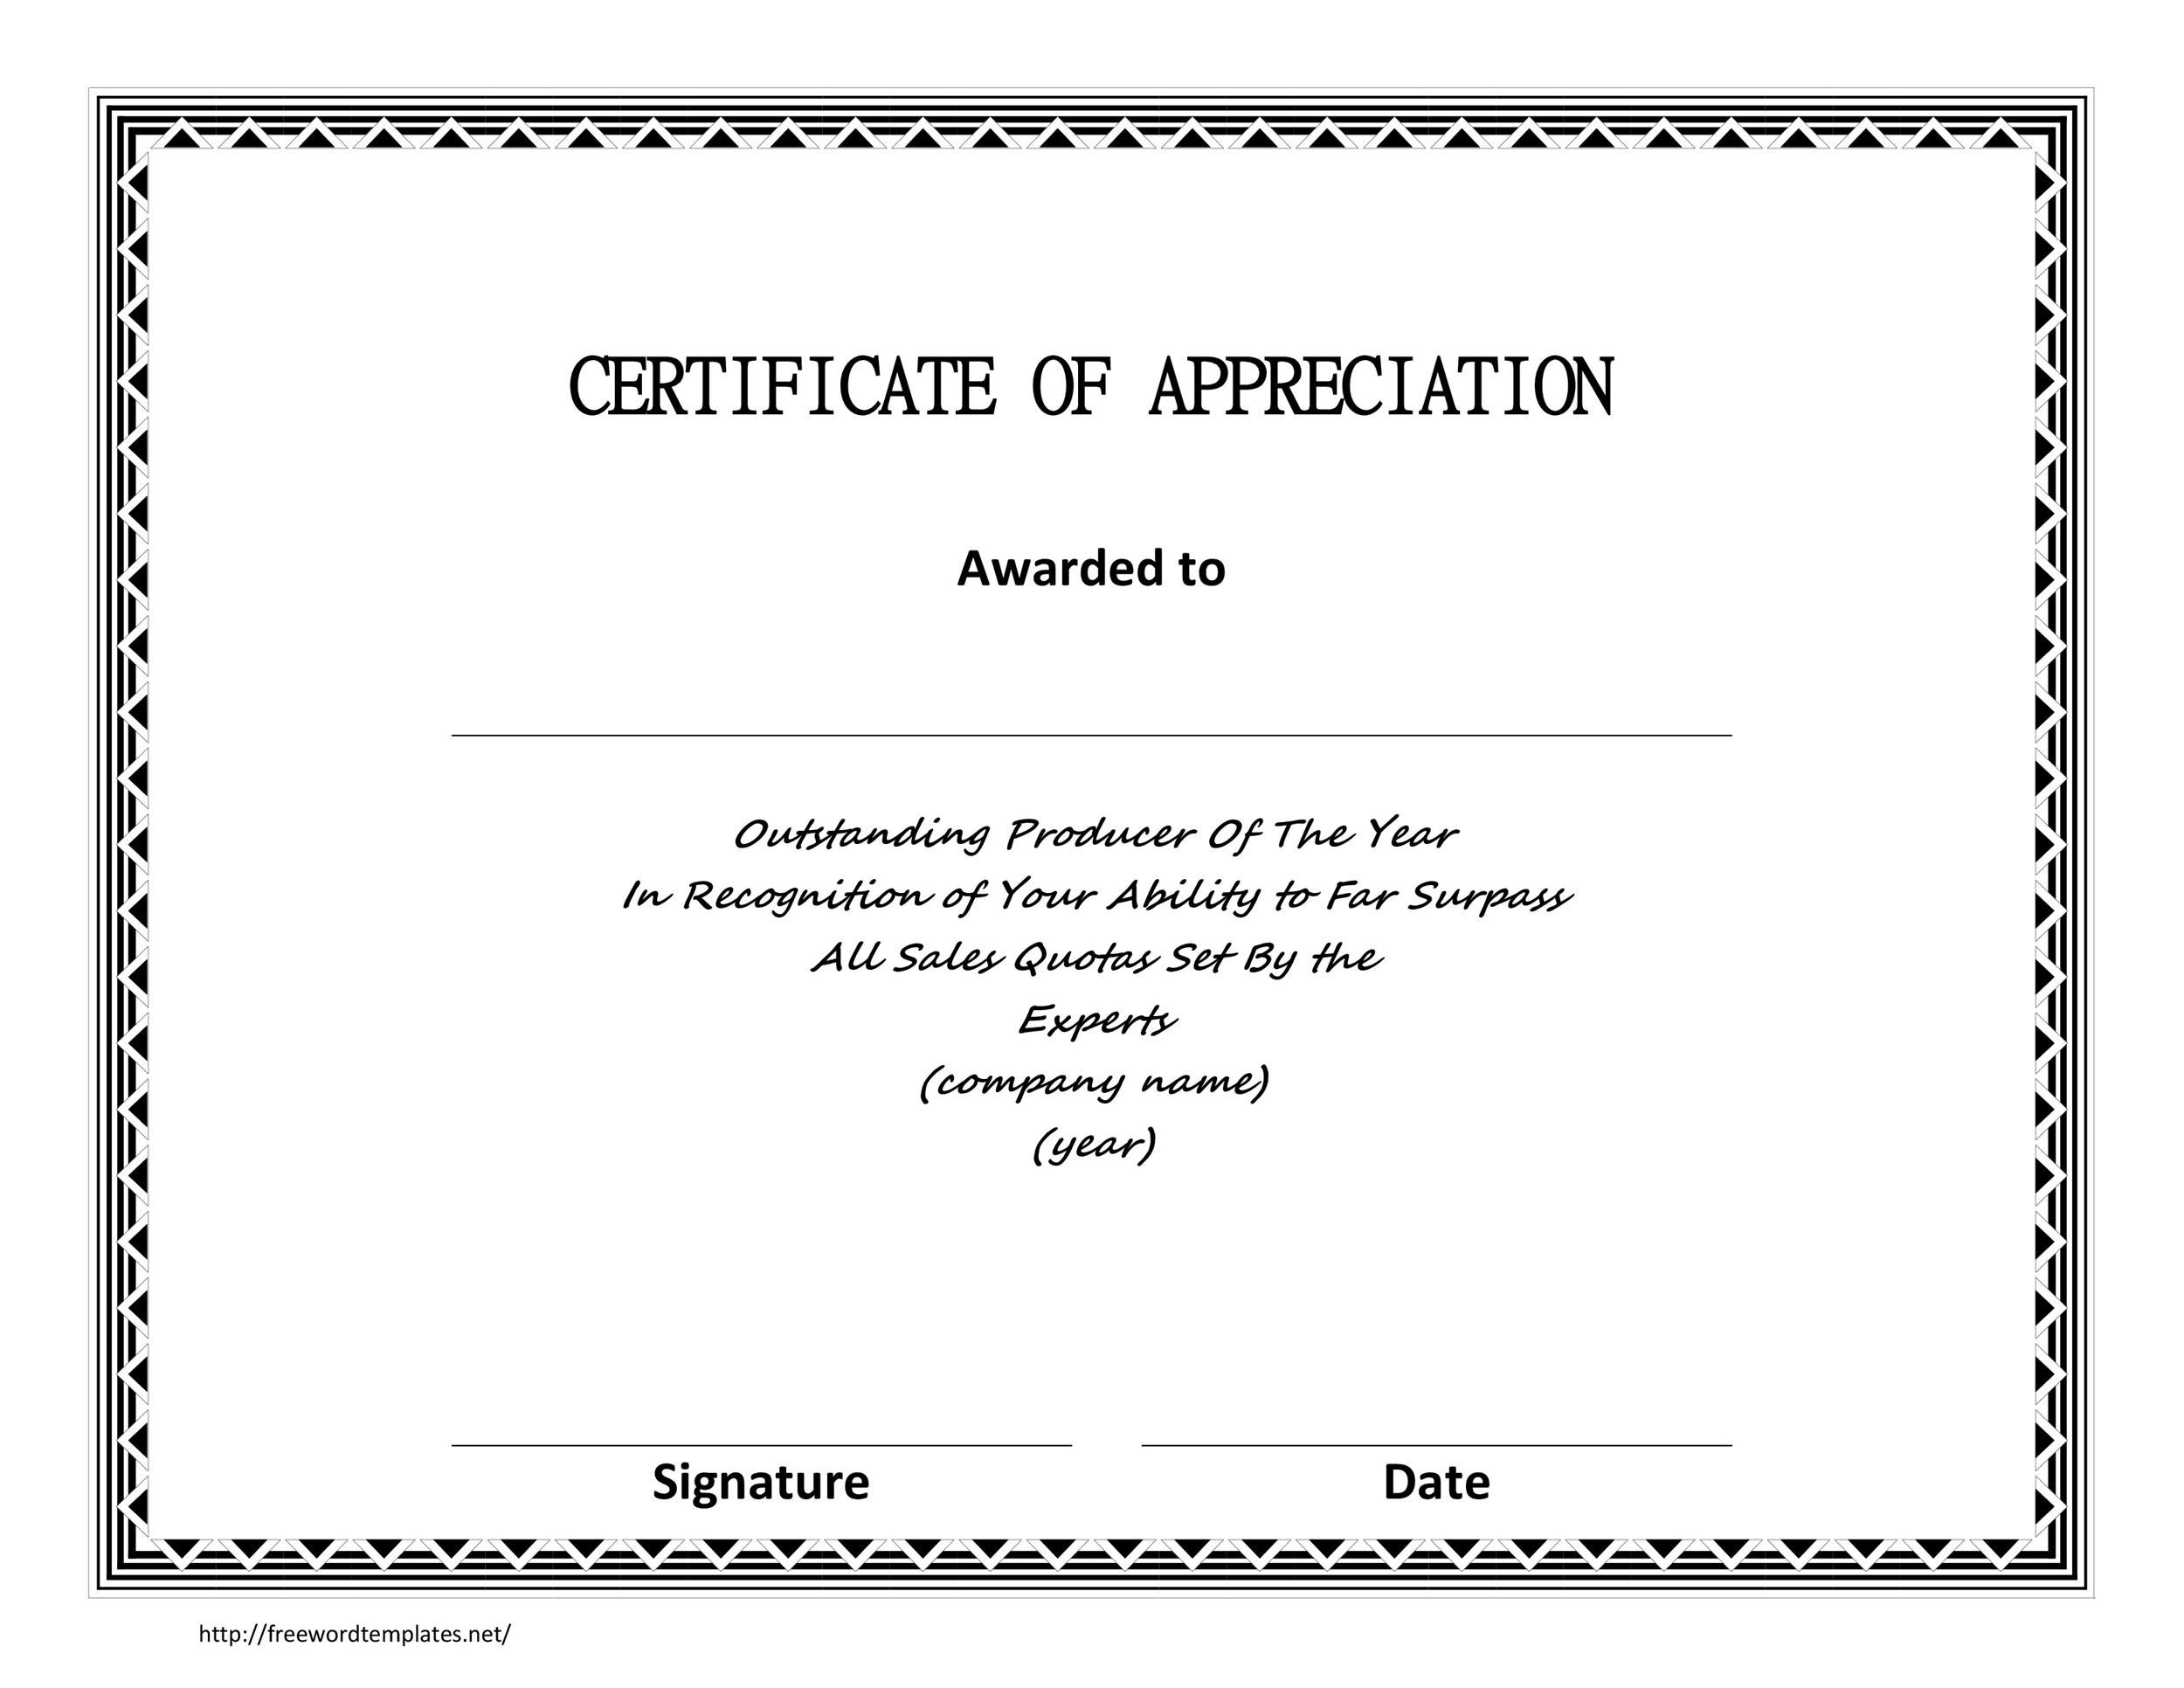 free certificate of appreciation 06 printable certificate of appreciation 06